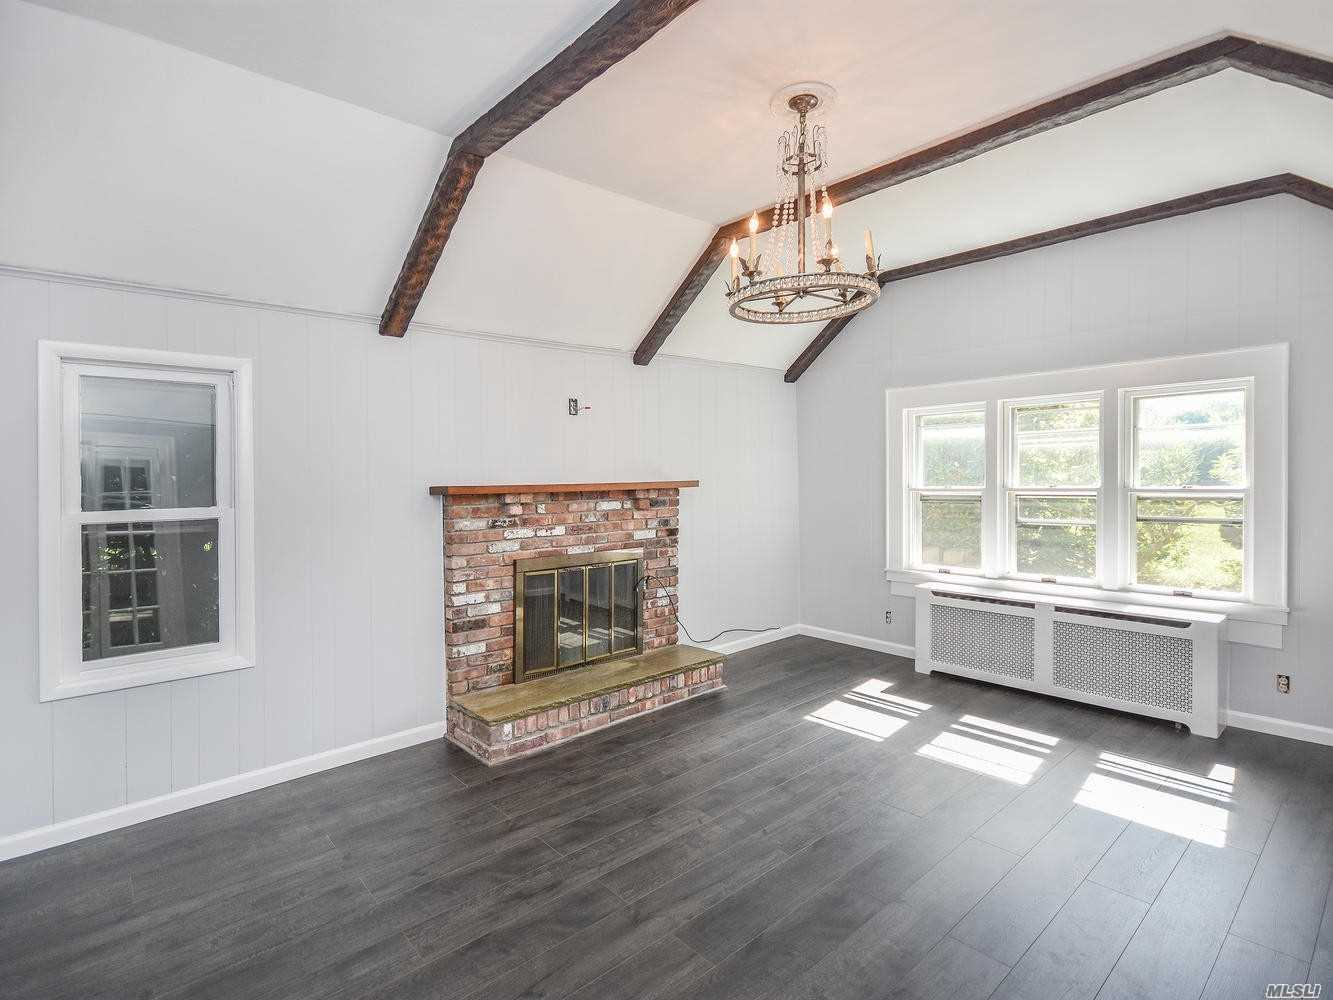 Easy Living On 1 Floor. Living Room Wth Fireplace.No Backyard But Huge Front Yard. Quiet Neighborhood. Oil Heating. A Must See.